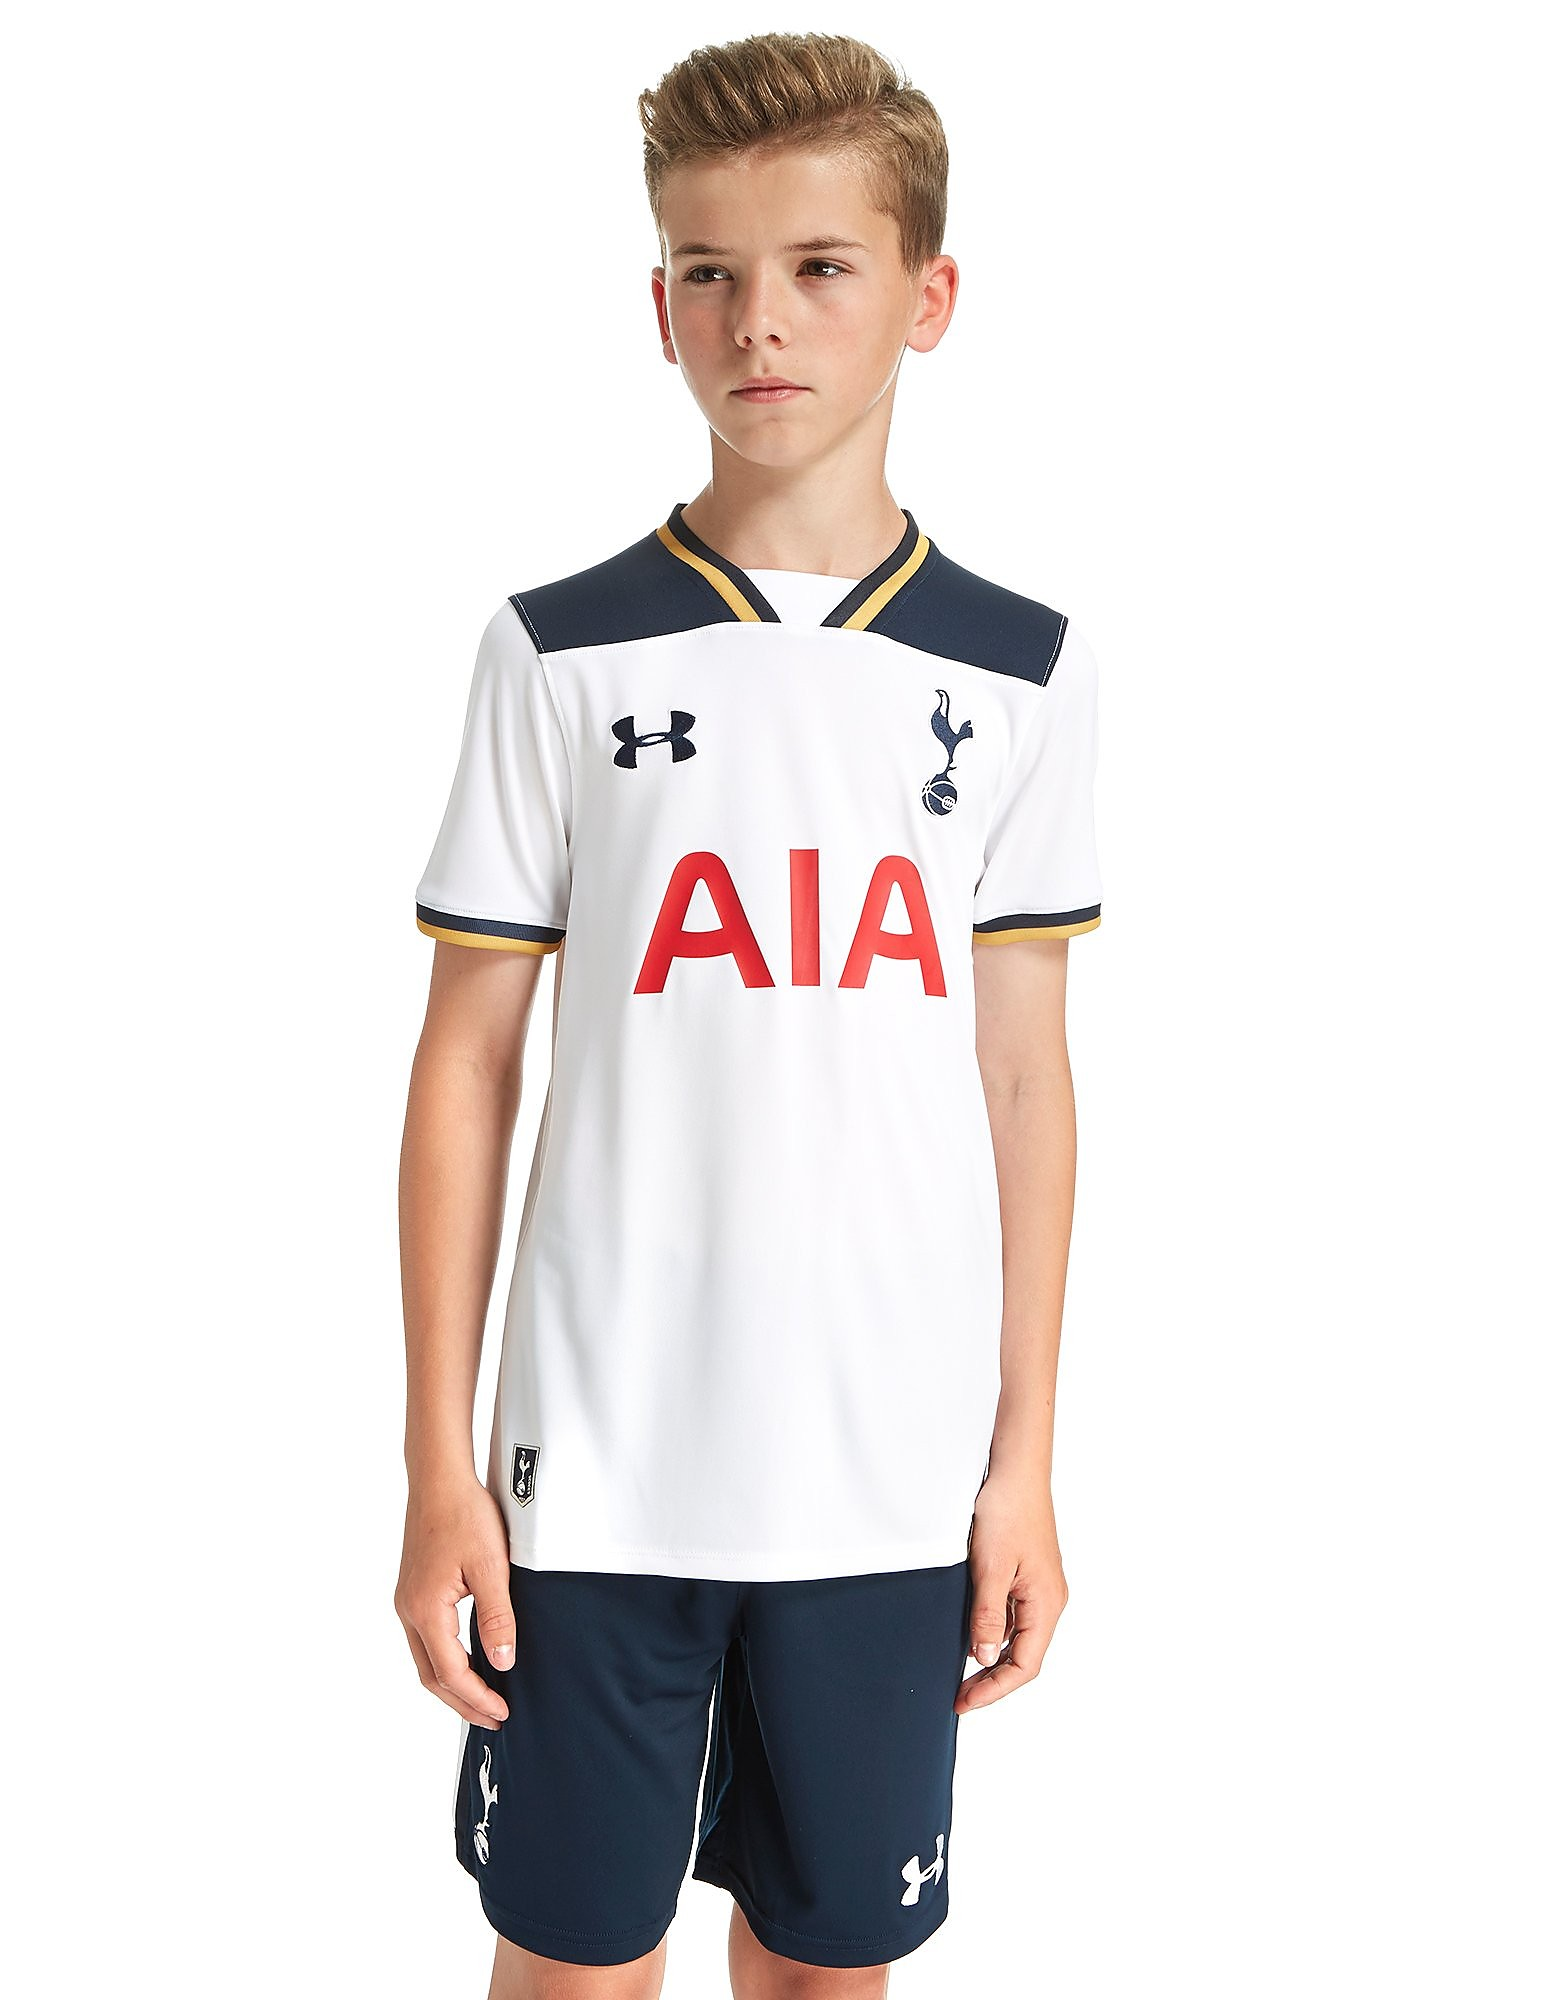 Under Armour Tottenham Hotspur FC 2016/17 Home Shirt Junior